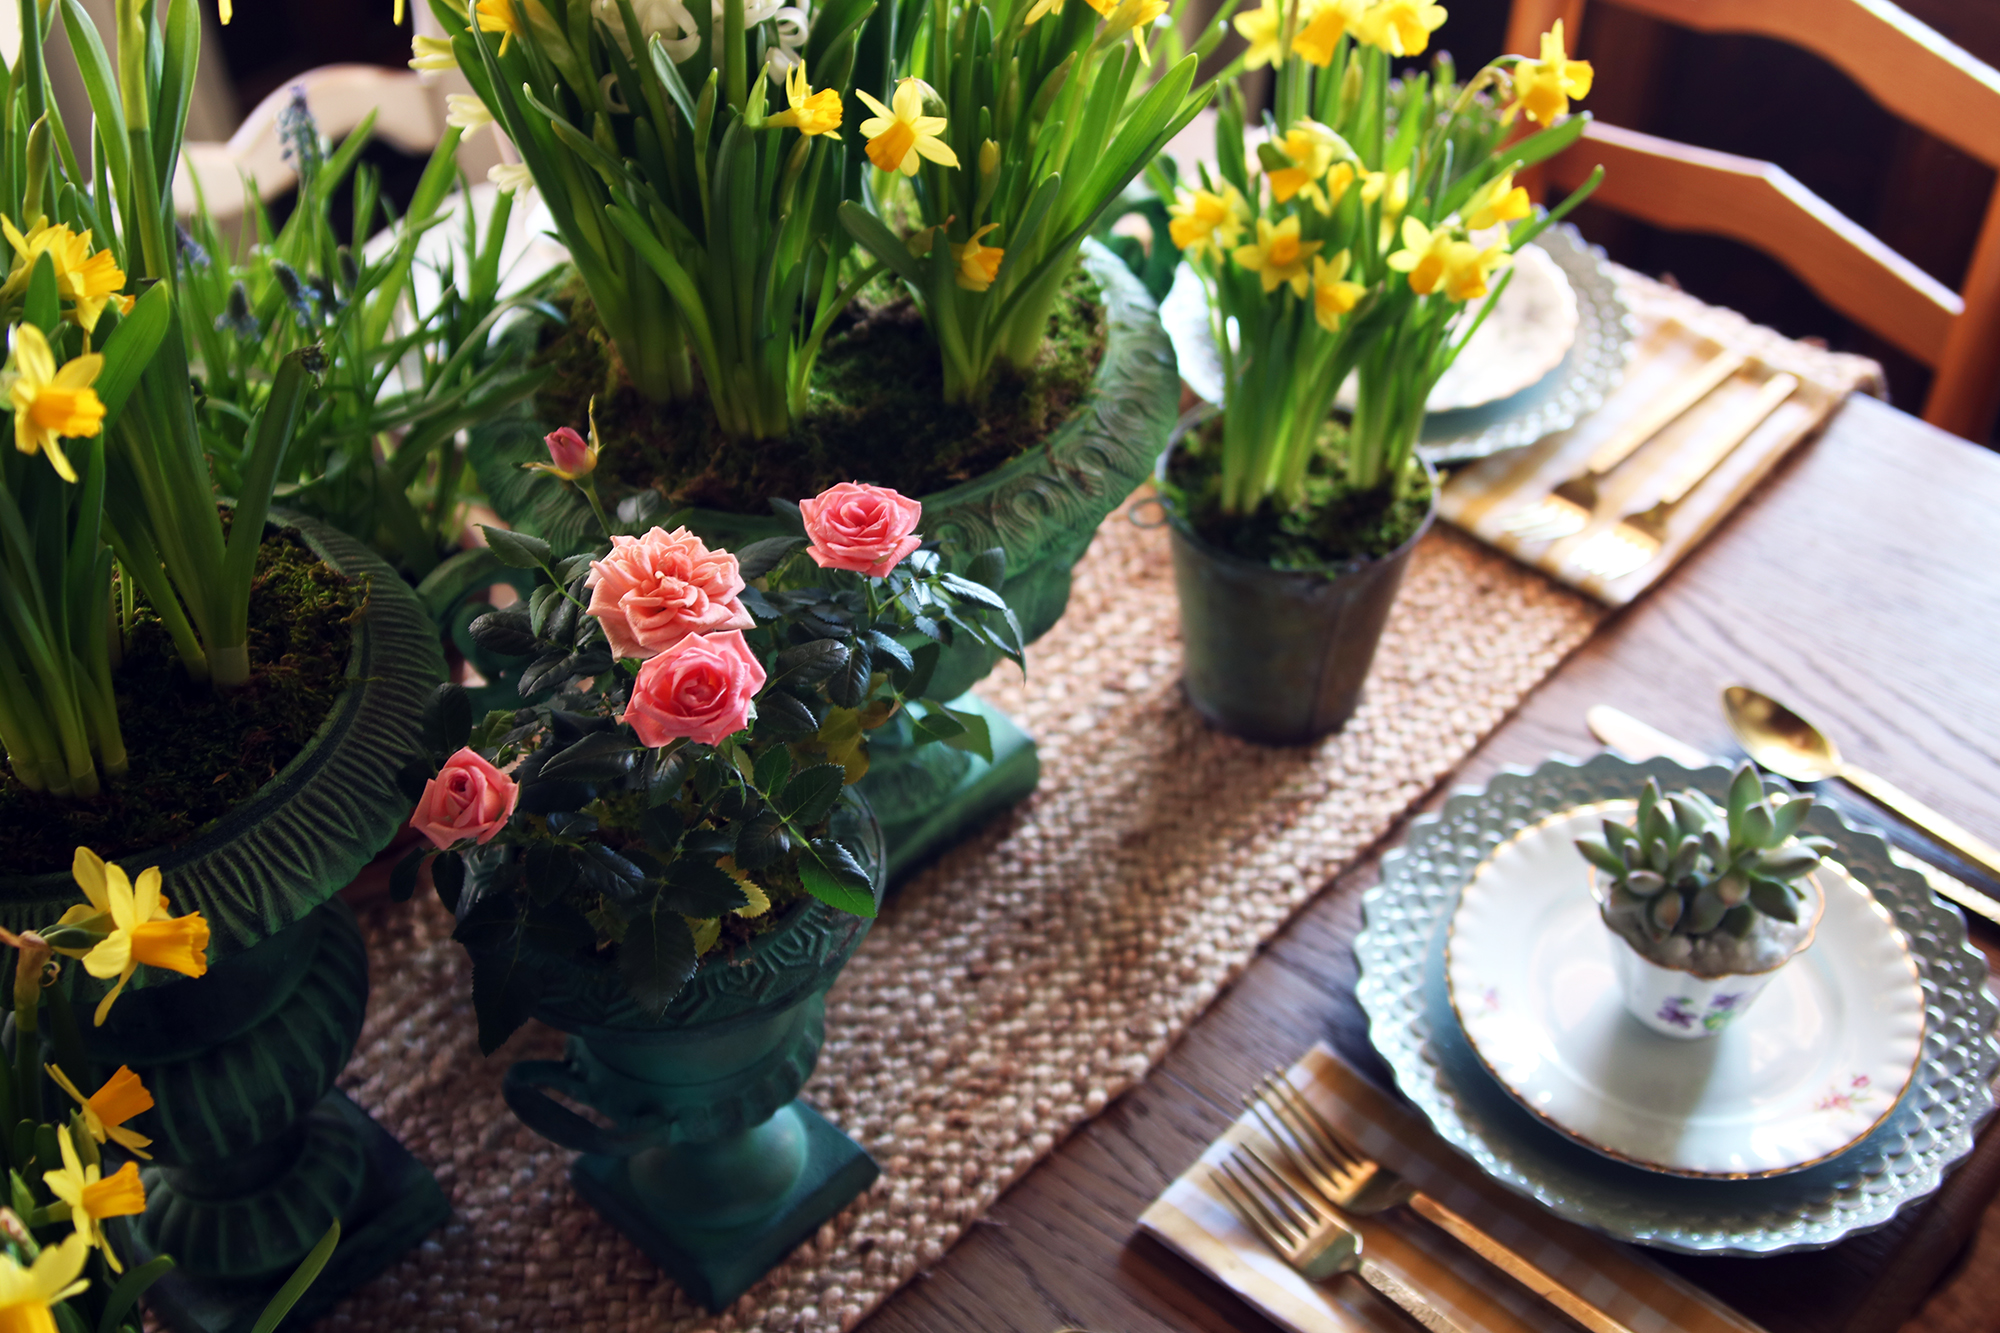 The Farmhouse Project: How to style your spring tablescape inspired by the garden.